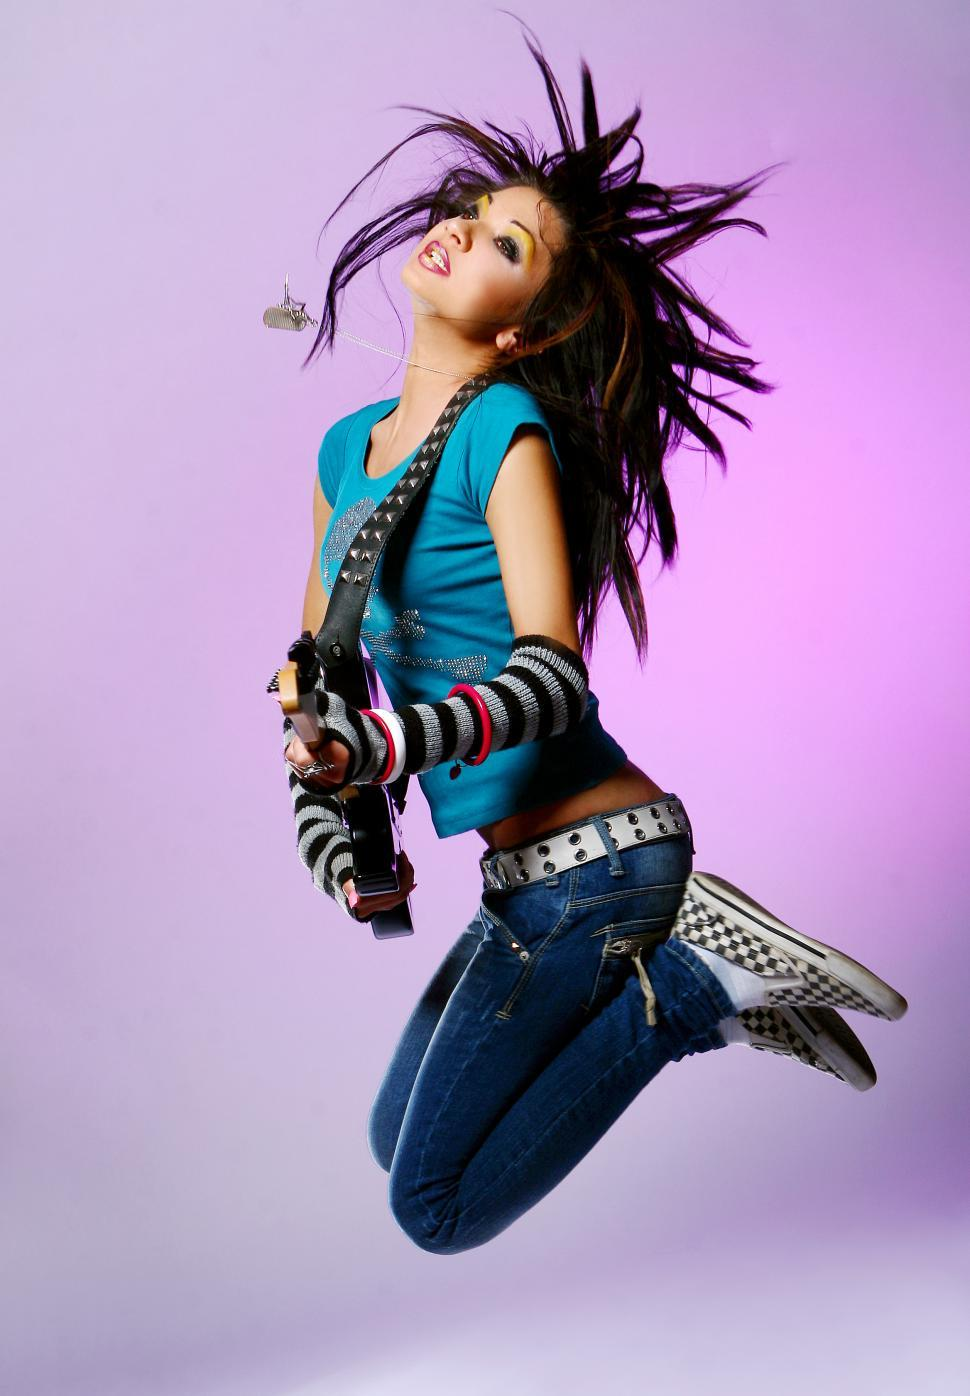 Download Free Stock HD Photo of young musician jumps with guitar Online